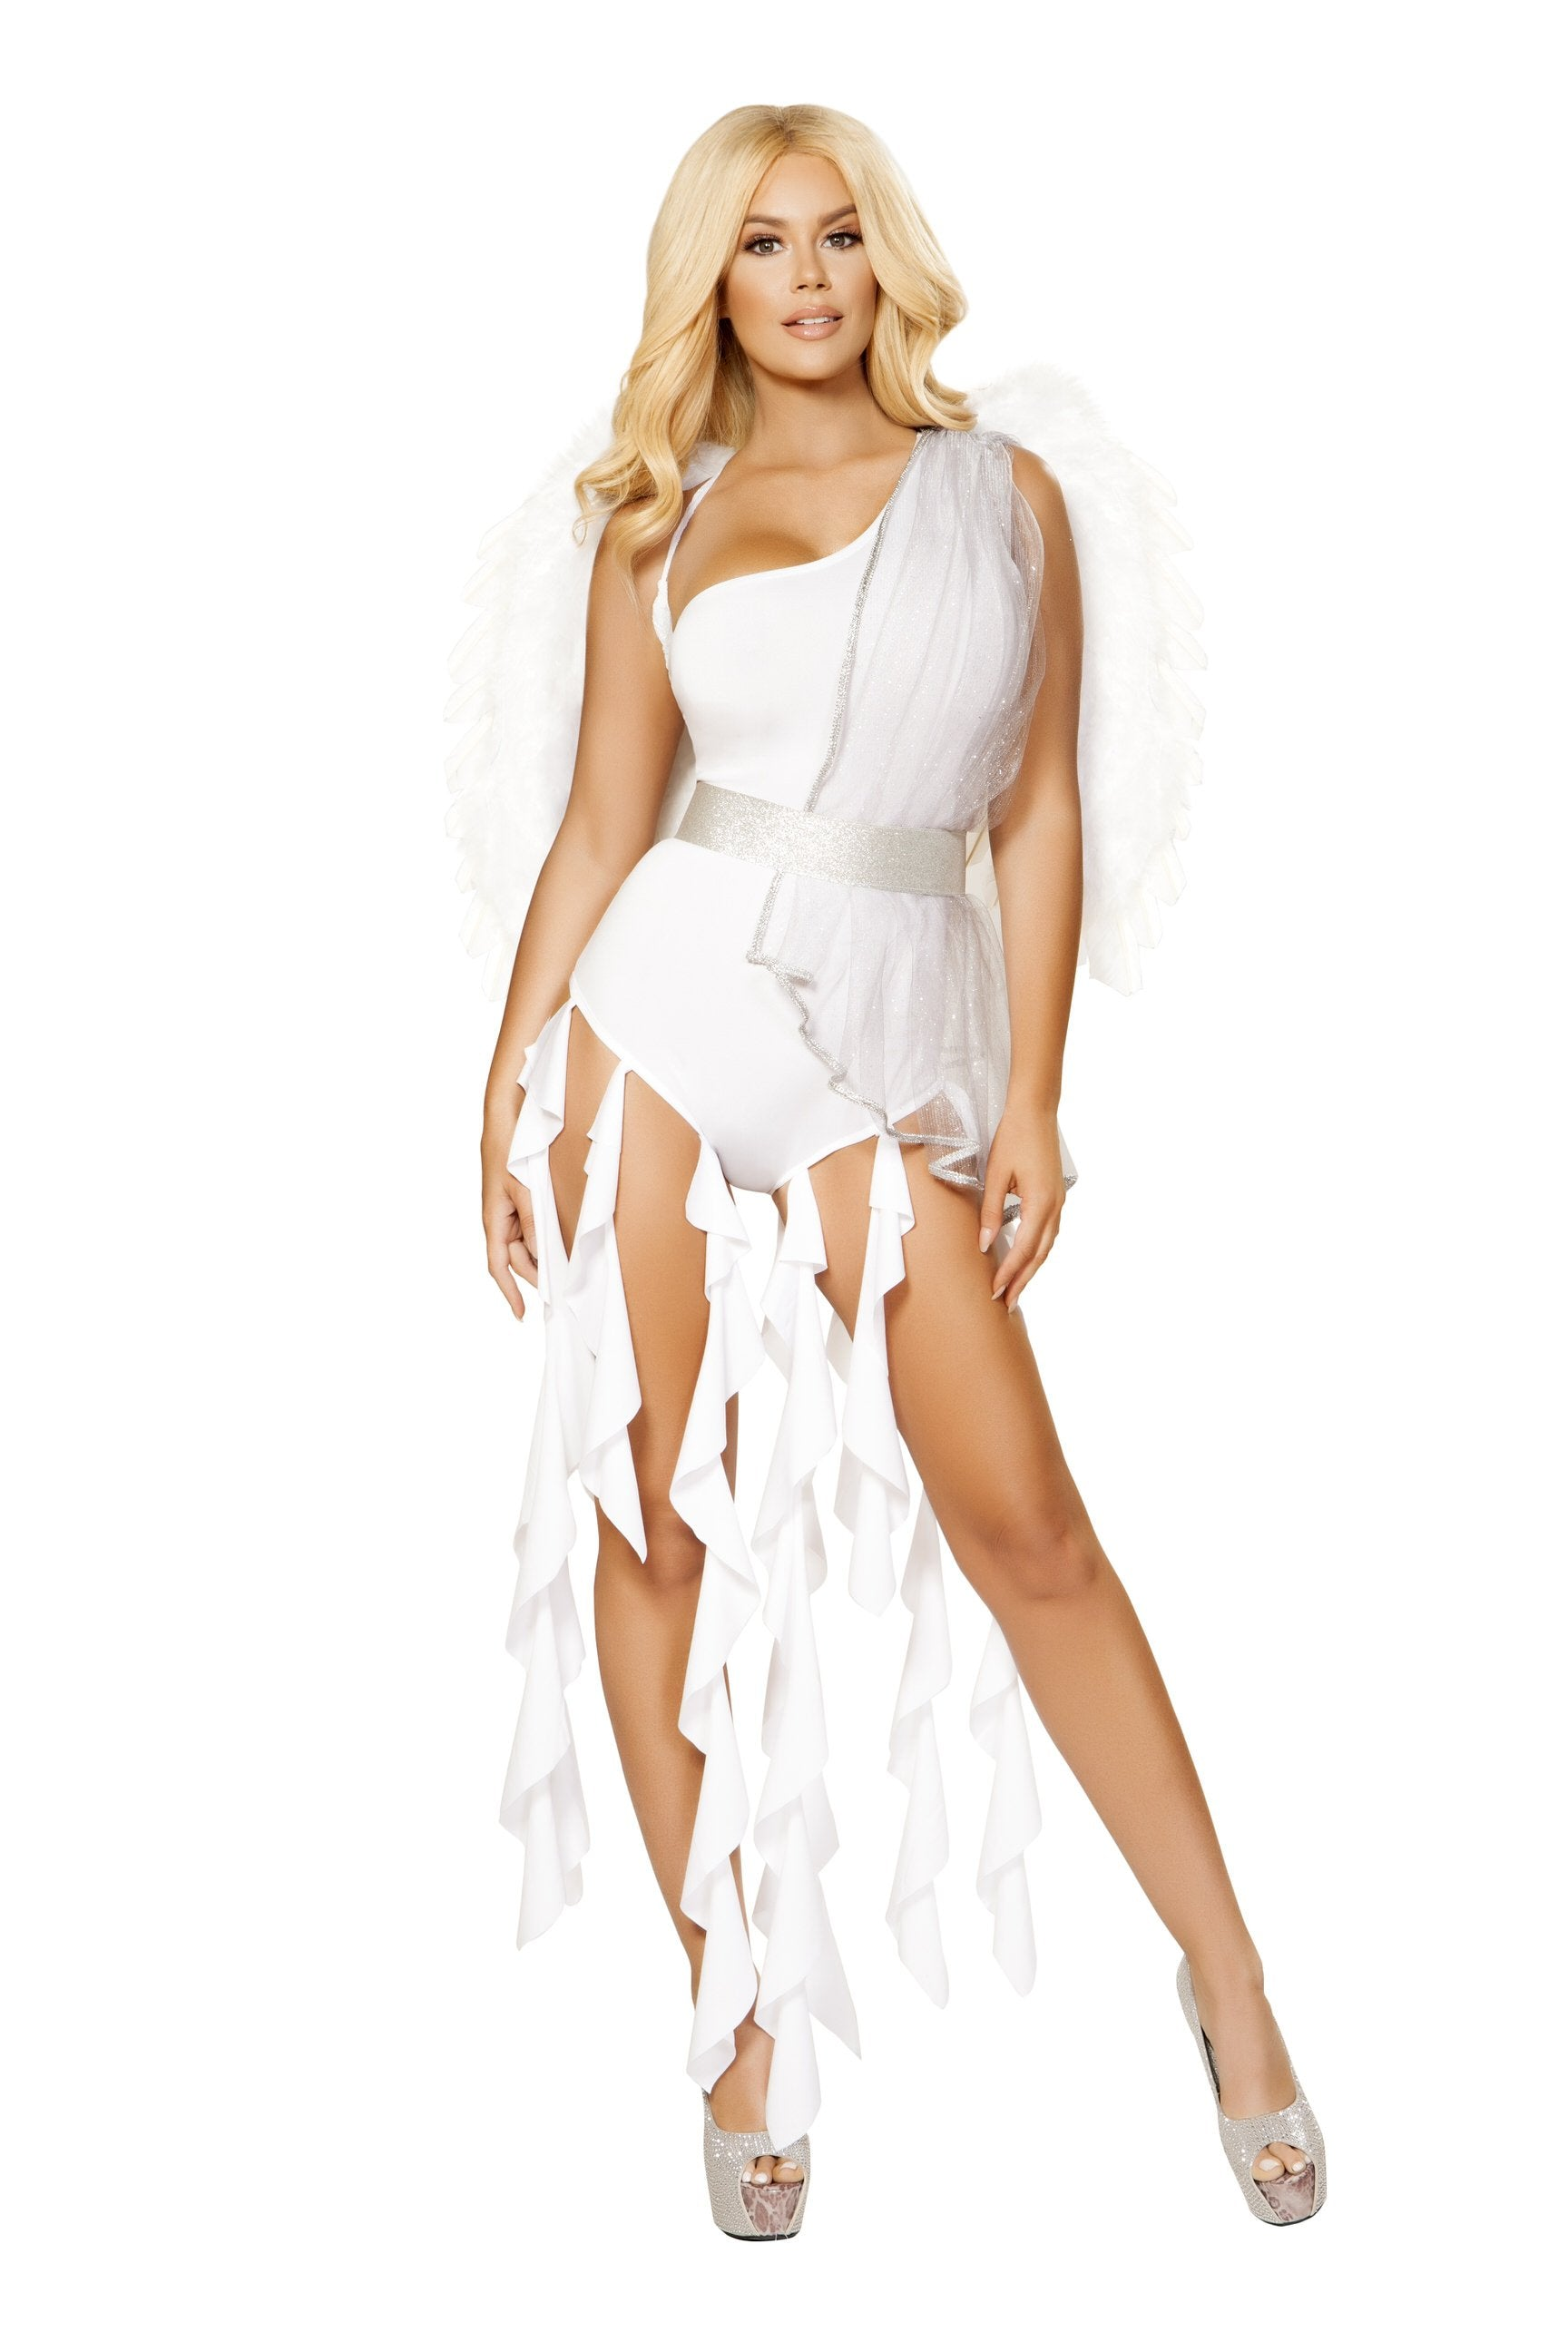 4871 - Roma Costume 2pc Angel Greek Goddess